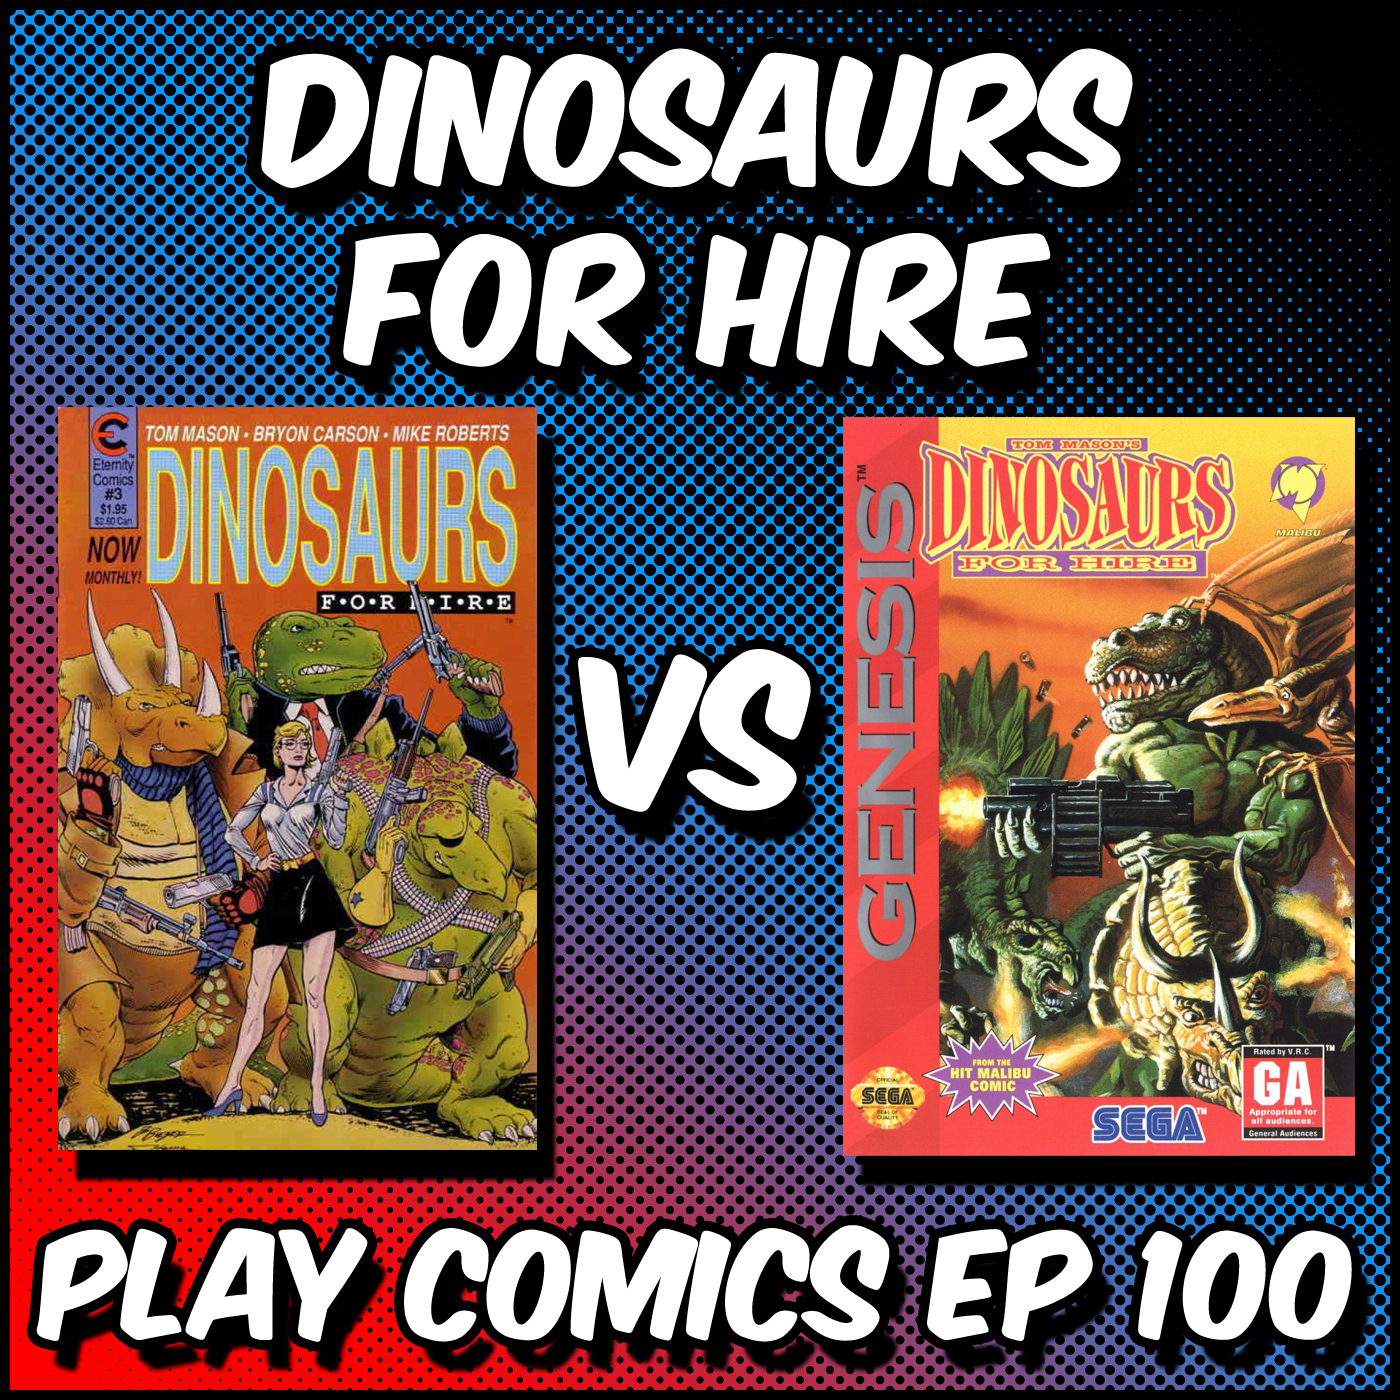 Dinosaurs for Hire with Steven Ray Morris (See Jurassic Right)